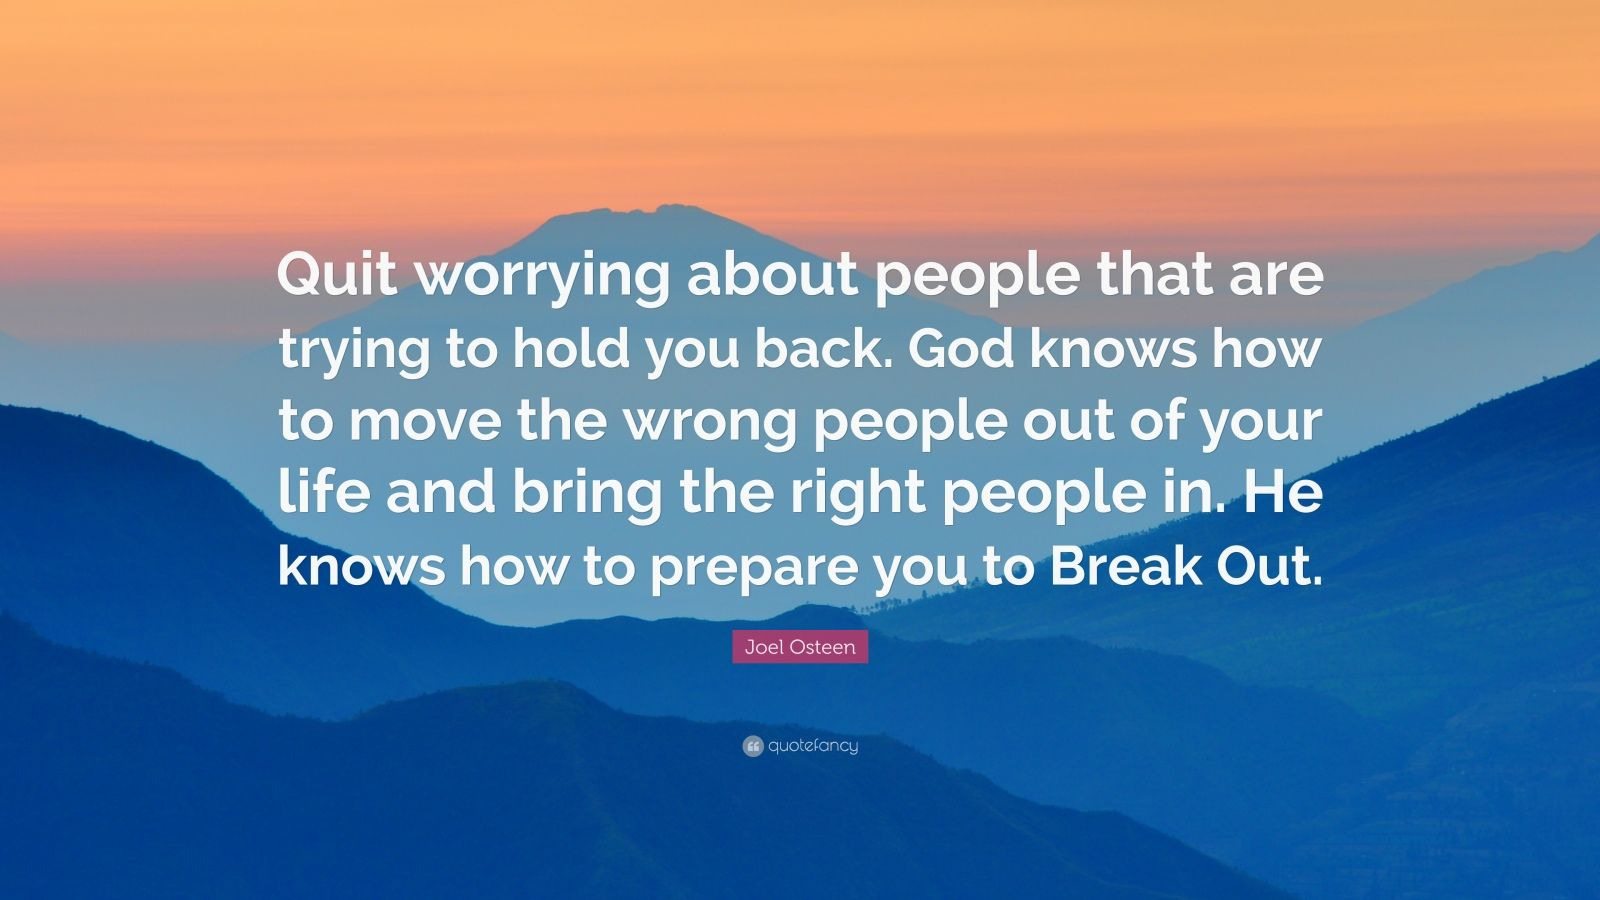 """Joel Osteen Quote: """"Quit worrying about people that are trying to hold you back. God knows how to move the wrong people out of your life and bring the right people in. He knows how to prepare you to Break Out."""""""